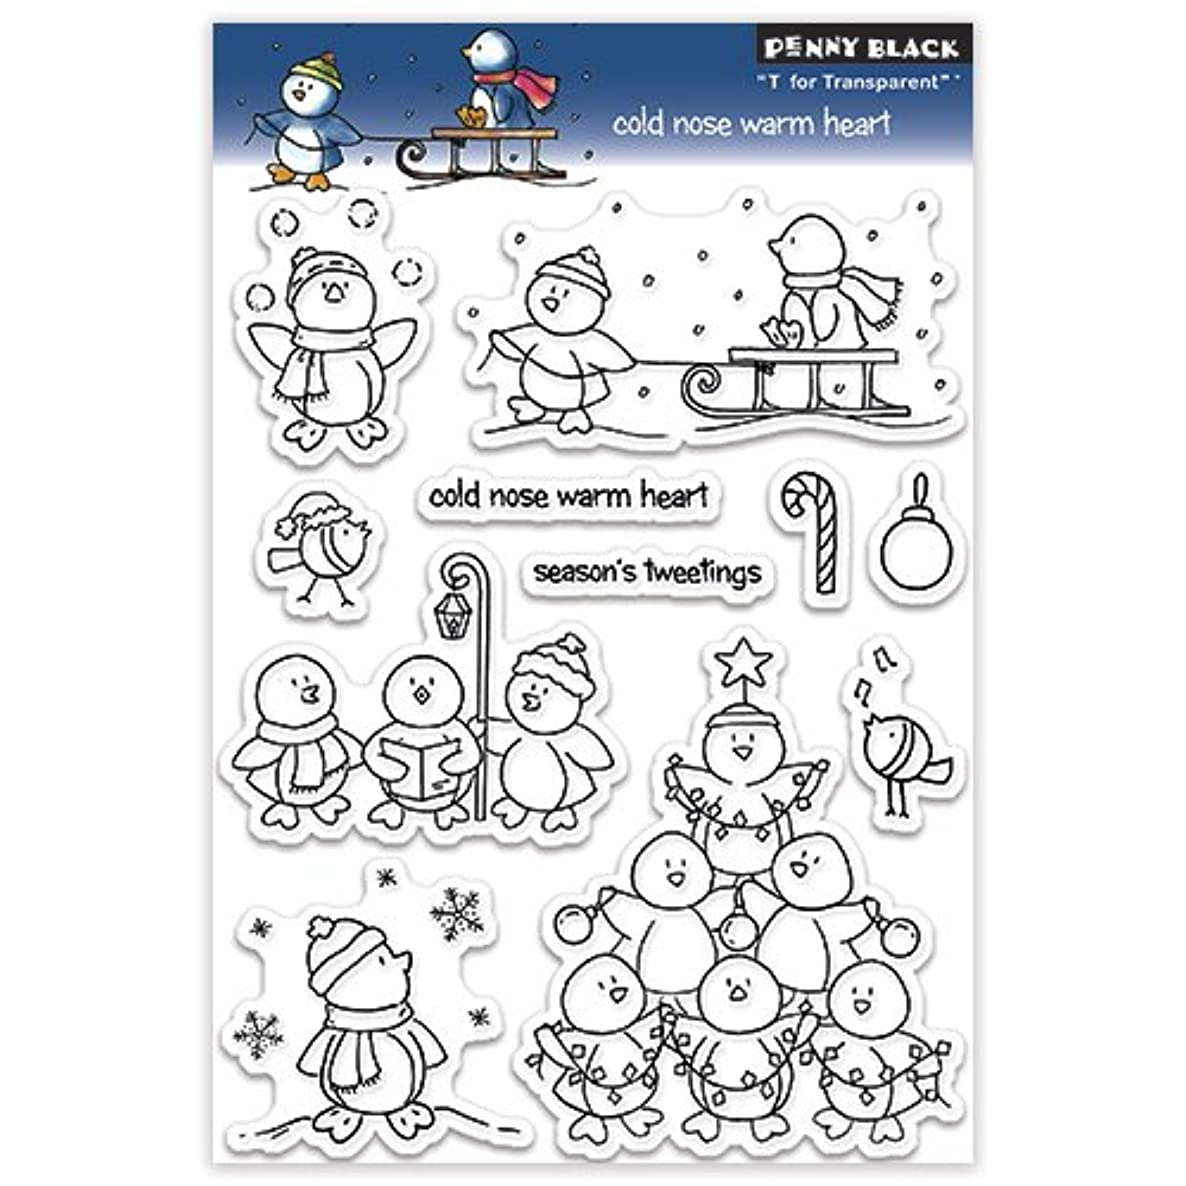 Penny Black 30-129 Cold Nose Warm Heart Clear Stamp